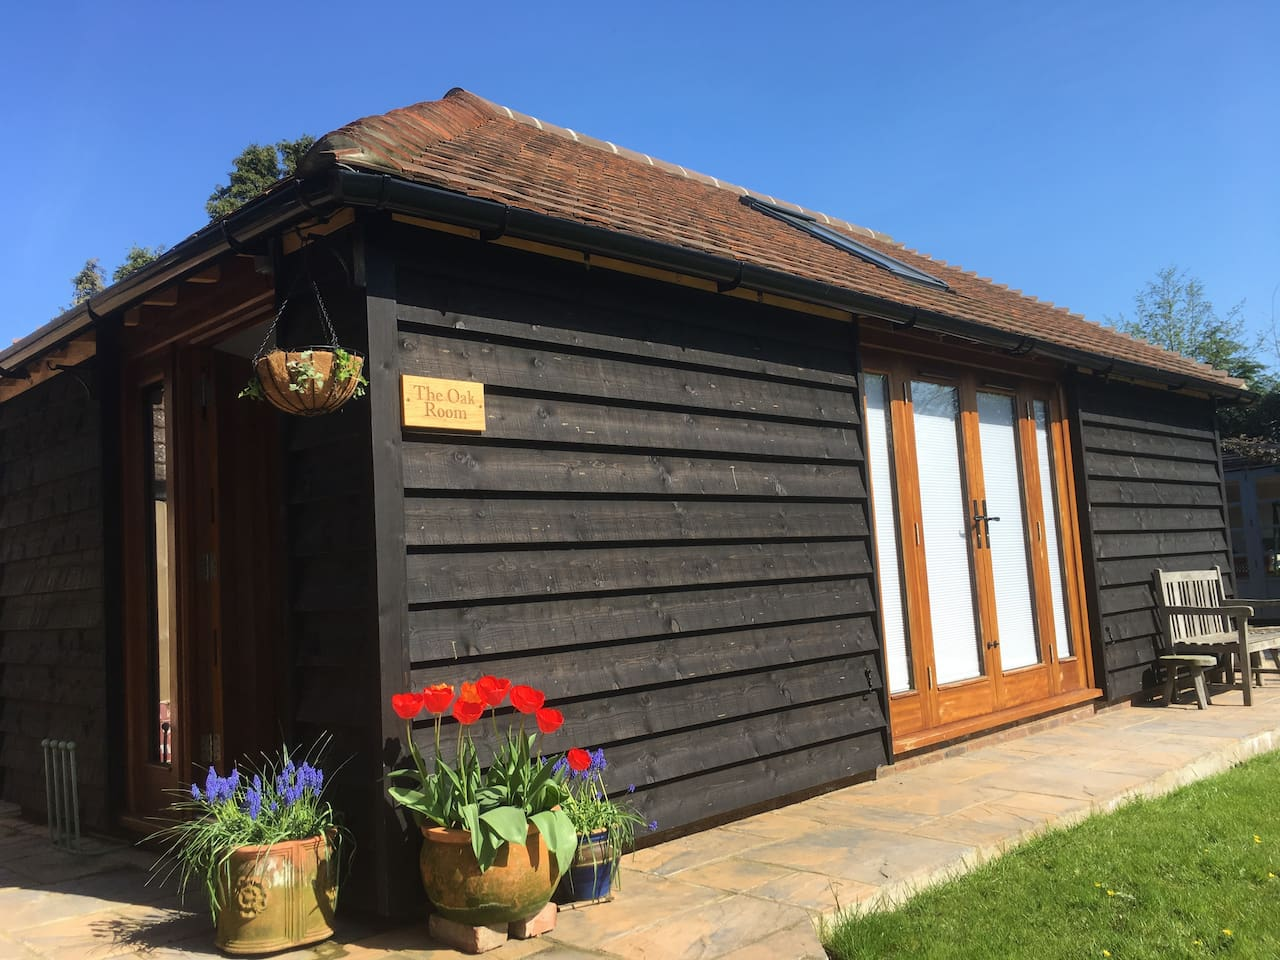 The Oak Room is a stylish garden studio built in 2017 set in the rural Sussex village of Hankham. A perfect  gateway to explore the nearby stunning South Downs National Park and discover our local history dating back to 1066.